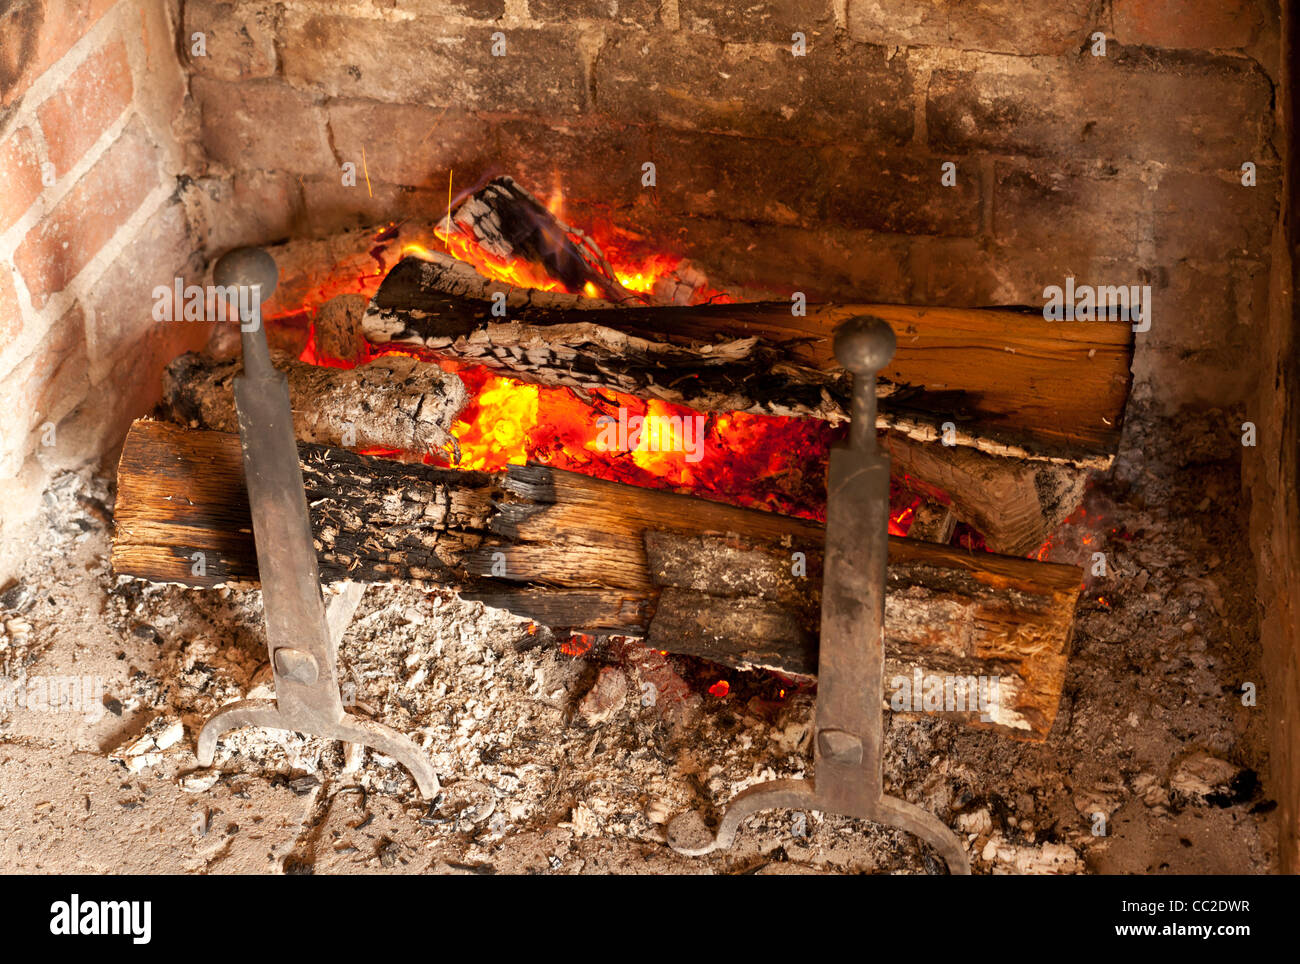 Brick fireplace with wooden logs burning - Stock Image